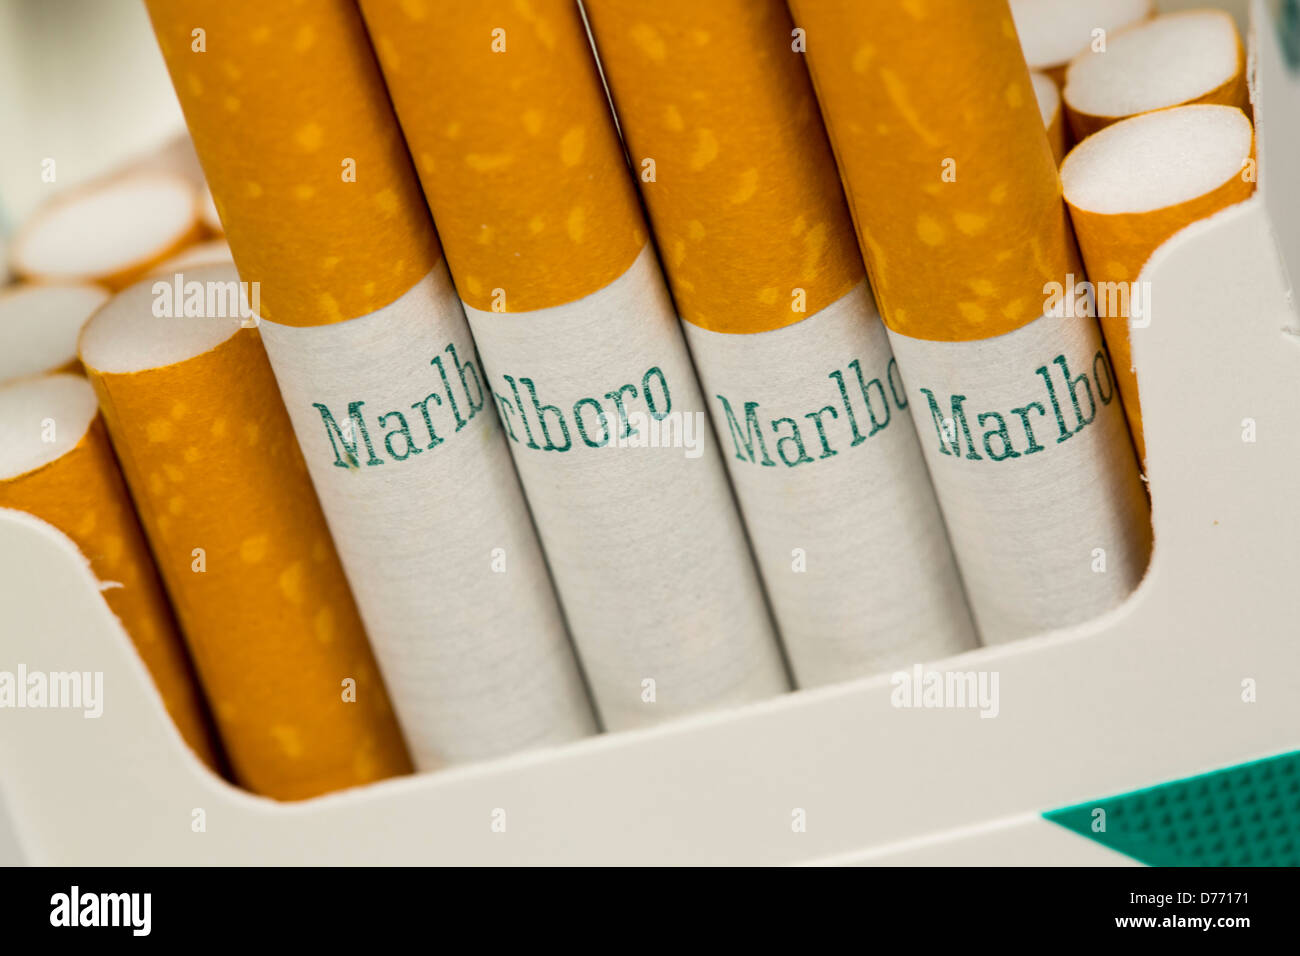 Can you order cigarettes Marlboro online UK